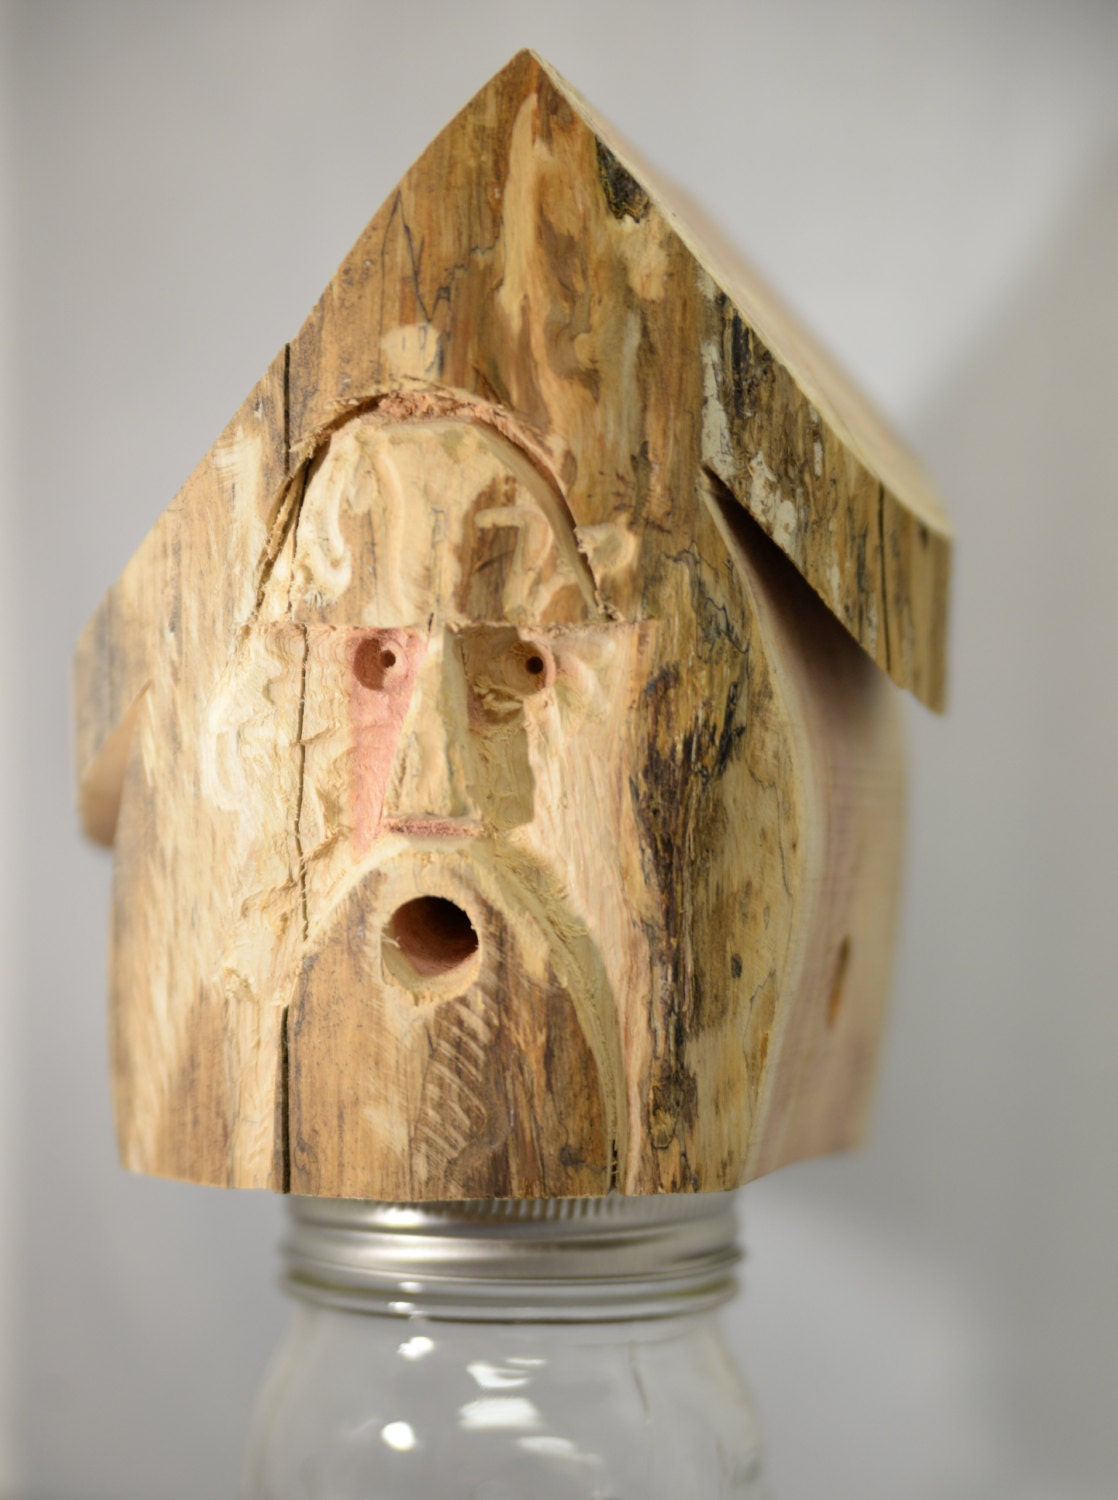 Artisan carved face carpenter bee trap